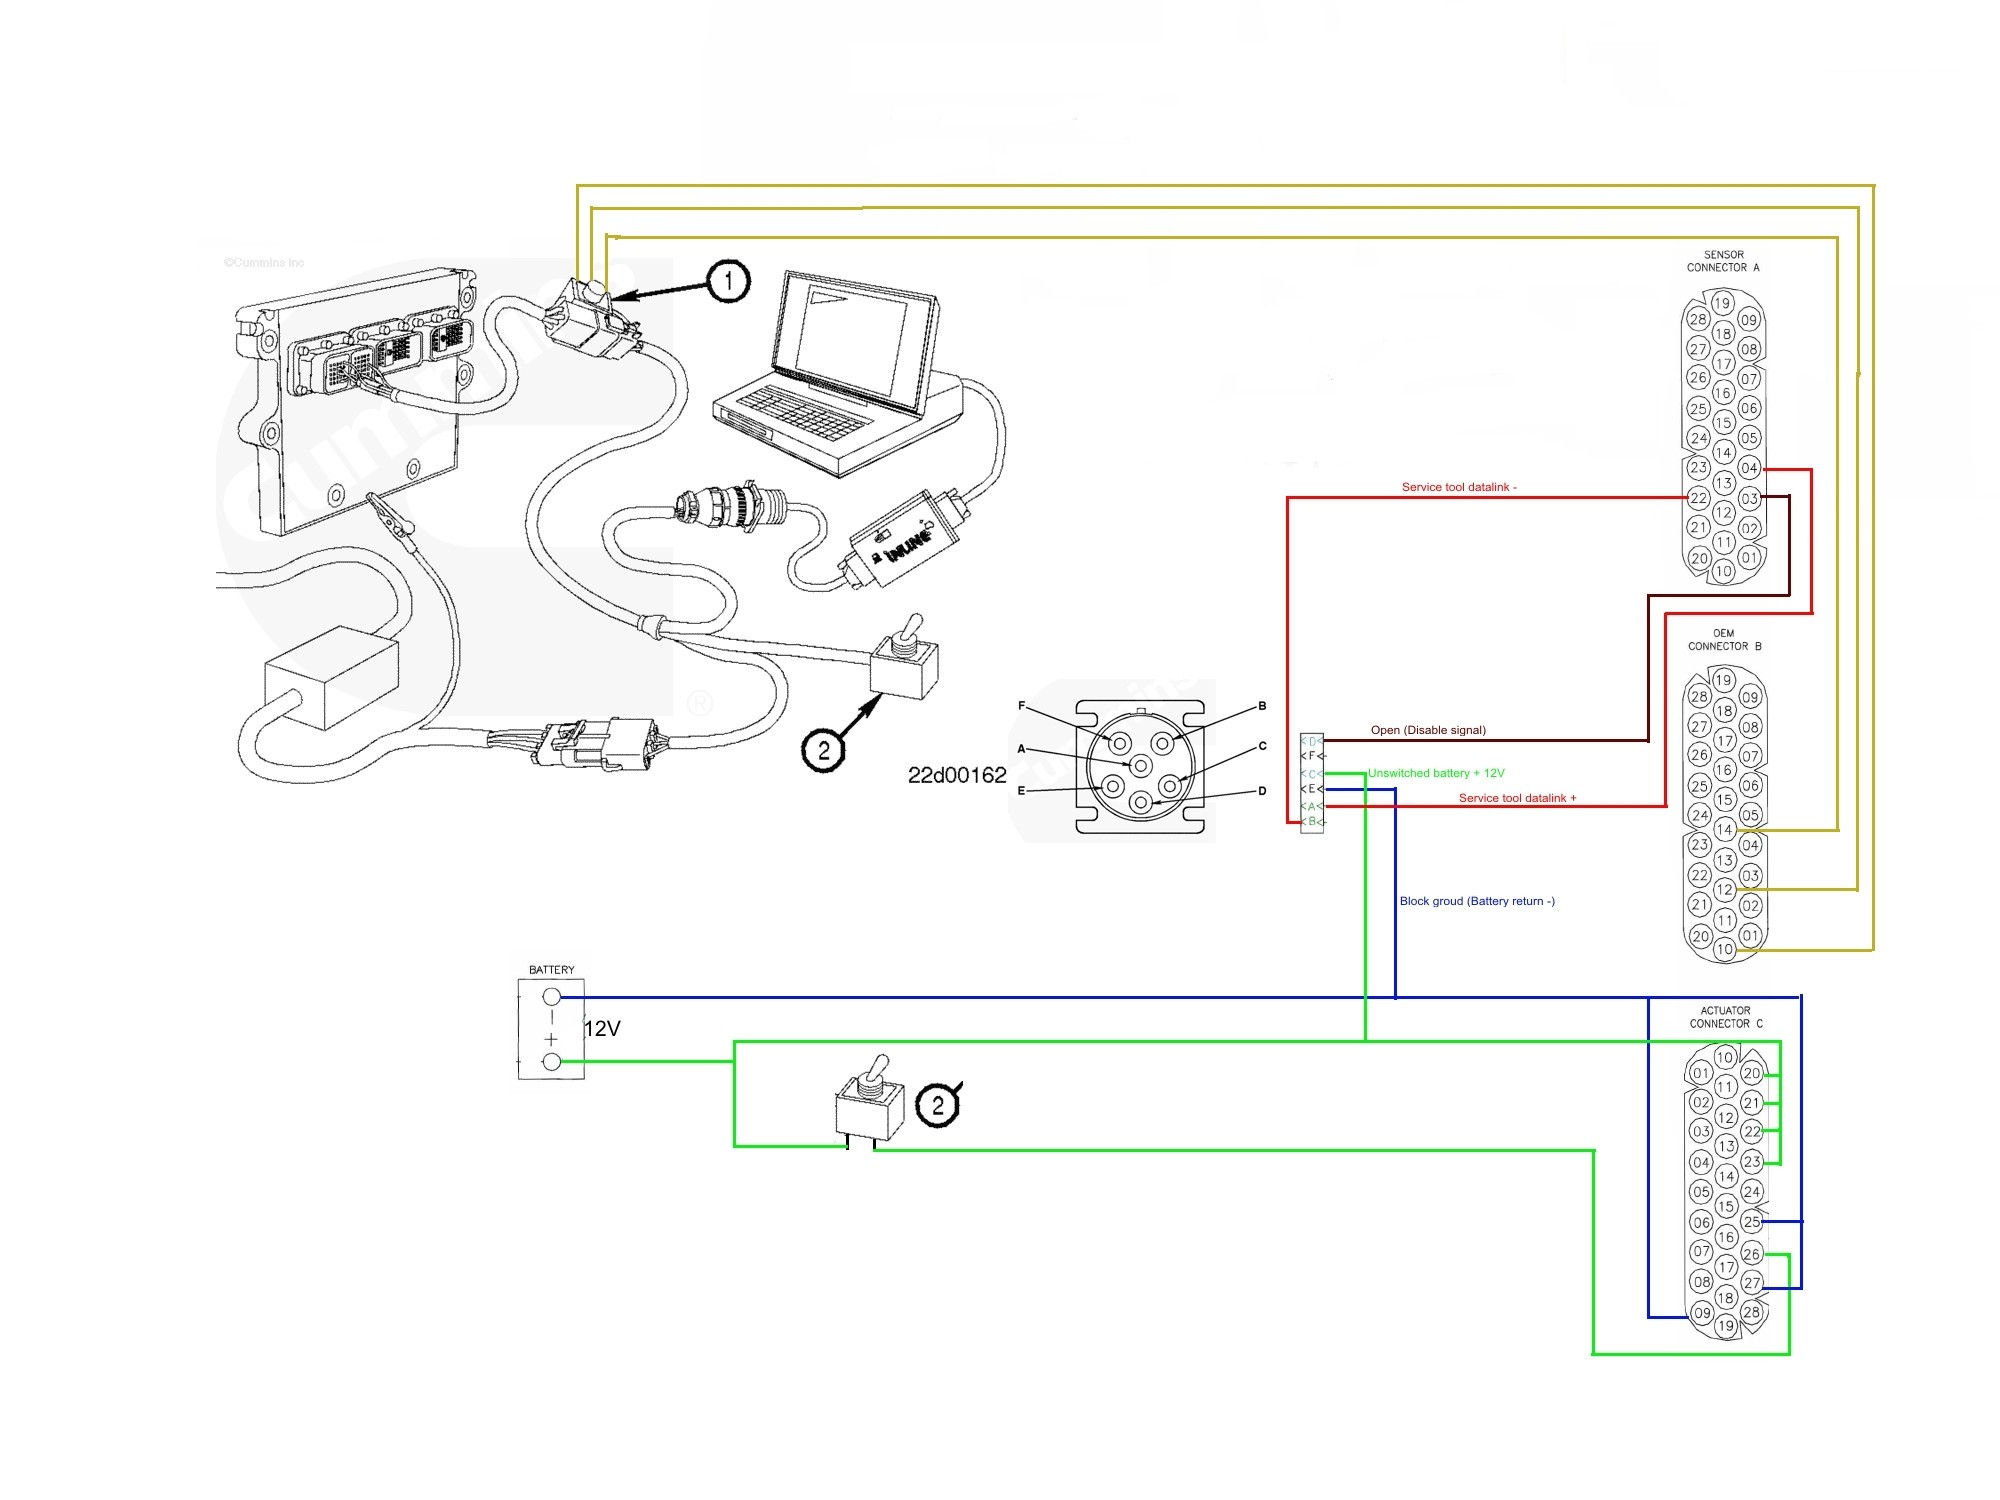 N14 Celect Wiring Diagrams For Freightliner Trucks on